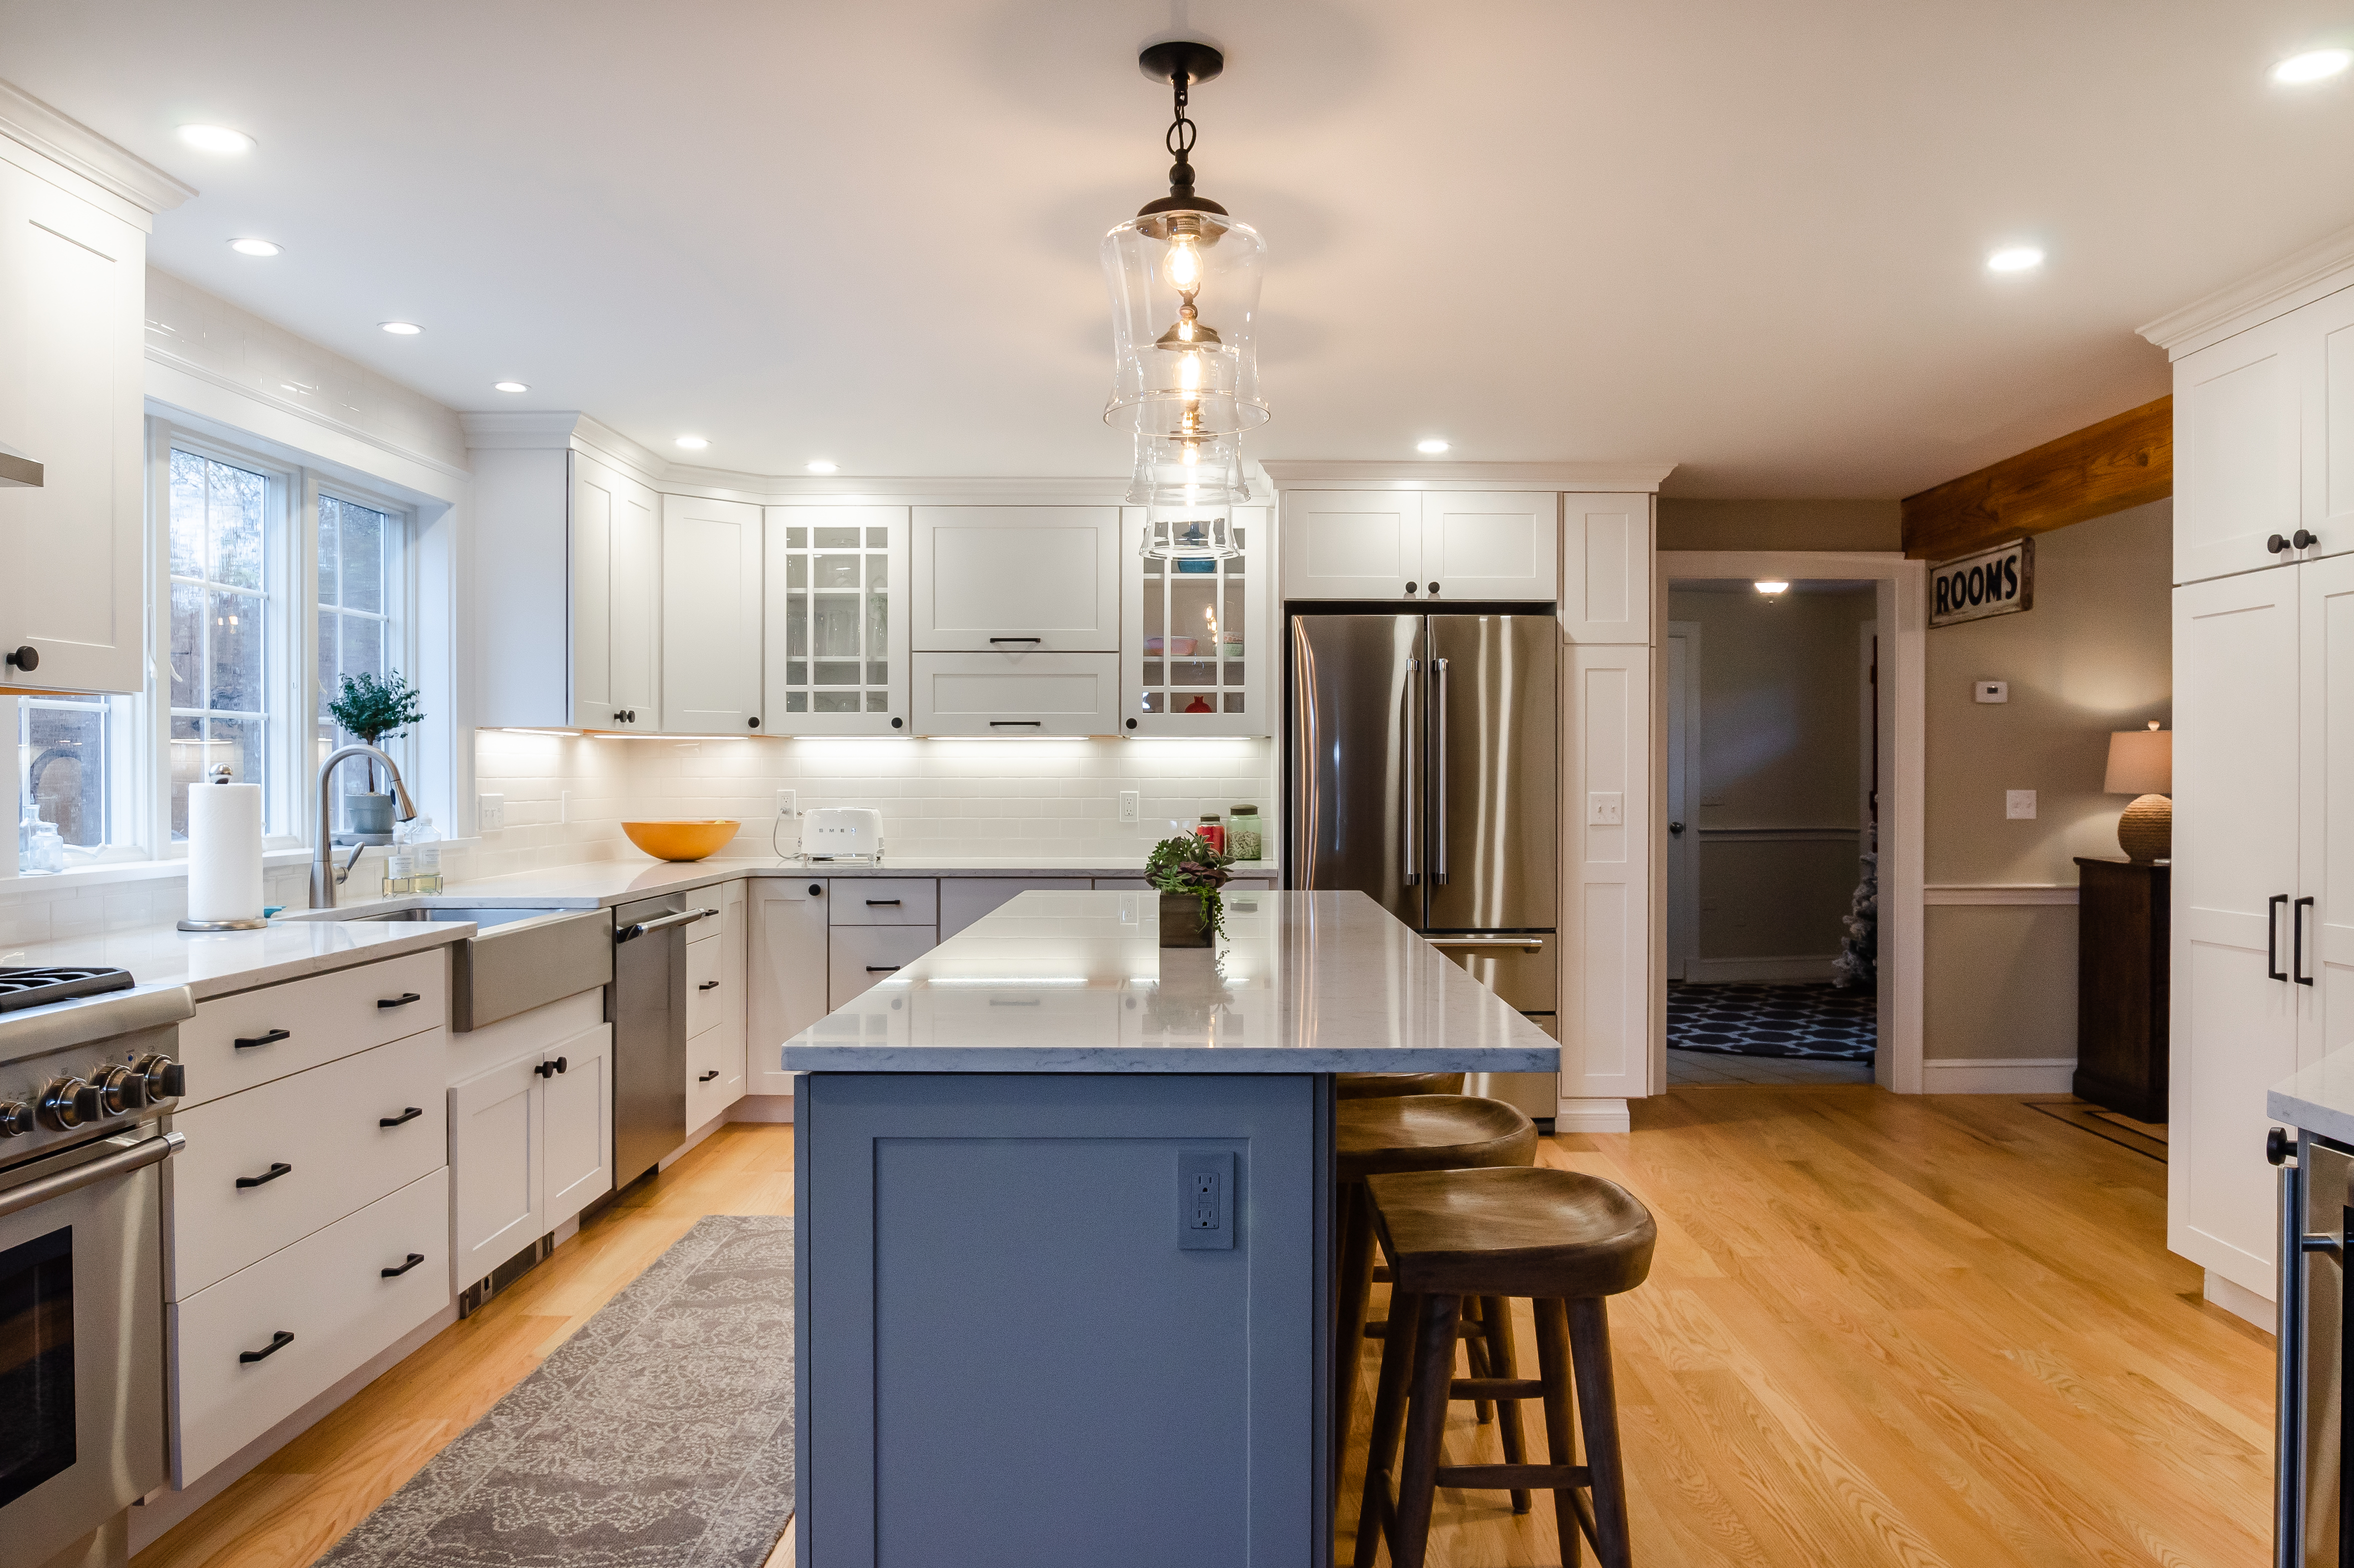 Your Kitchen Island Does Not Have To Match Your Cabinets Fairview Millwork